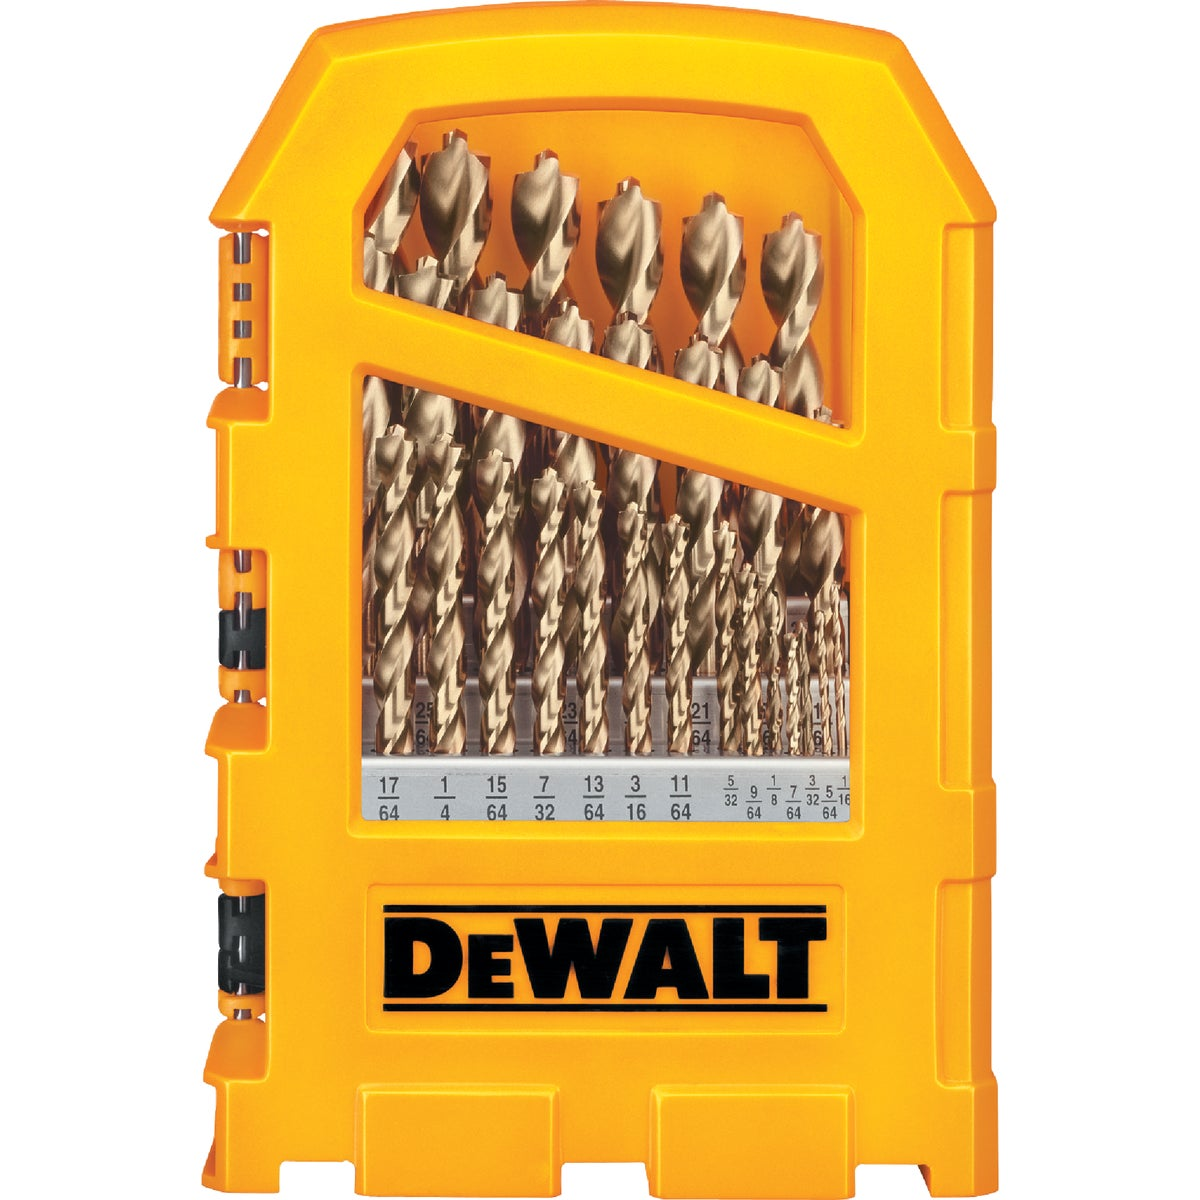 29PC DRILL BIT SET - DW1969 by DeWalt